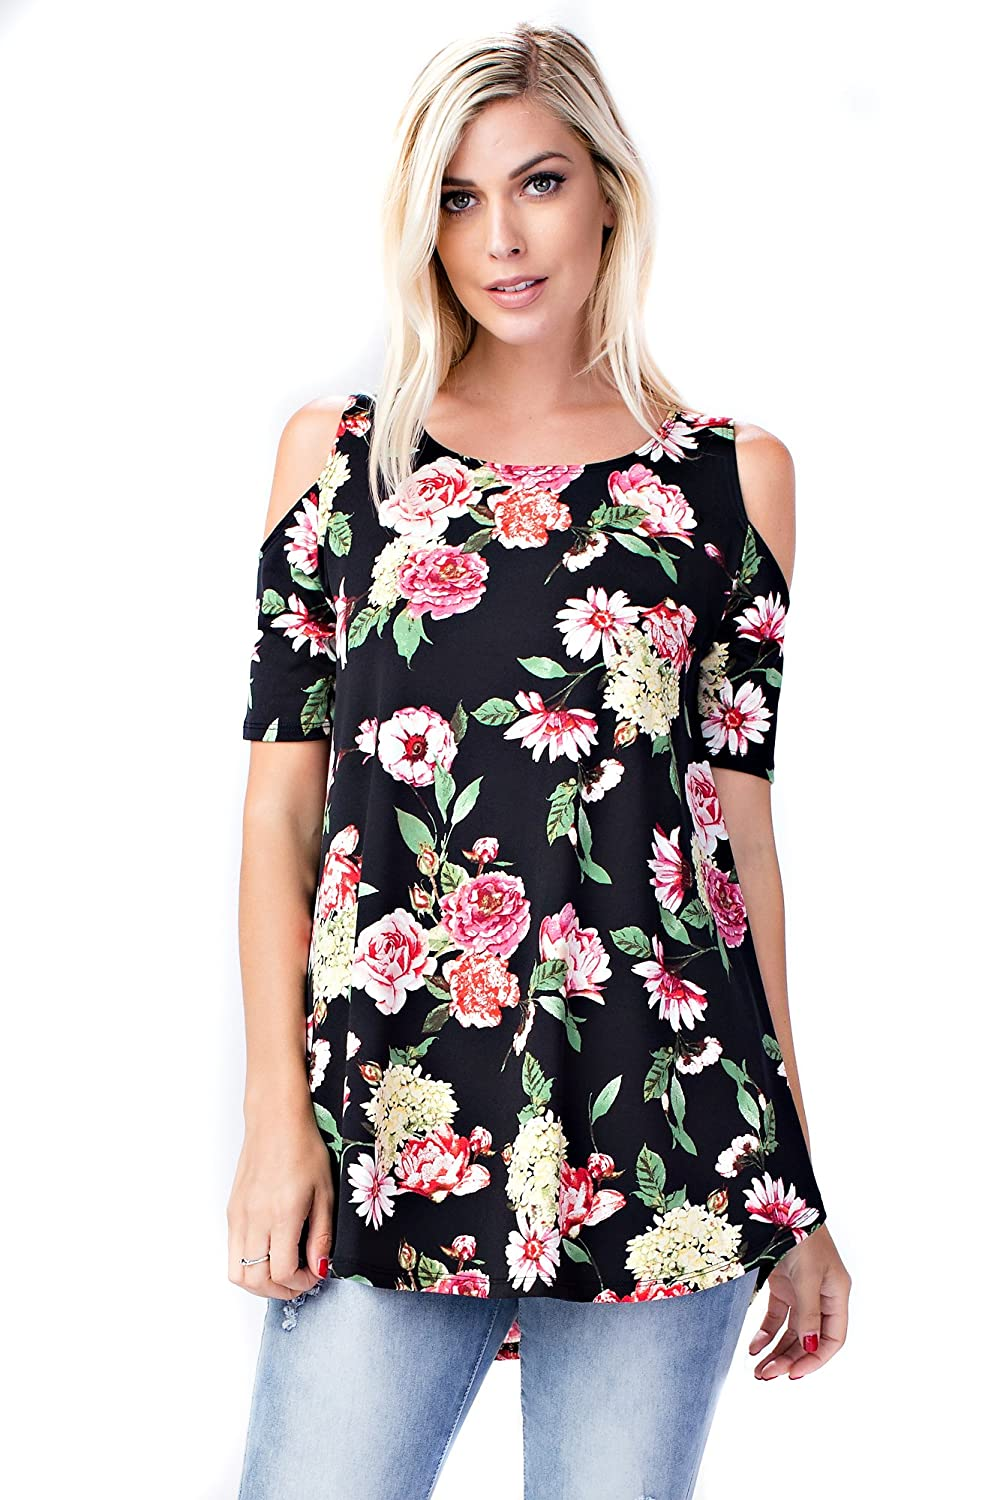 B3517 Black Fuchsia Floral Allora Betsy Red Couture Women's Cold Shoulder Soft Knit Tunic Top (S3X)